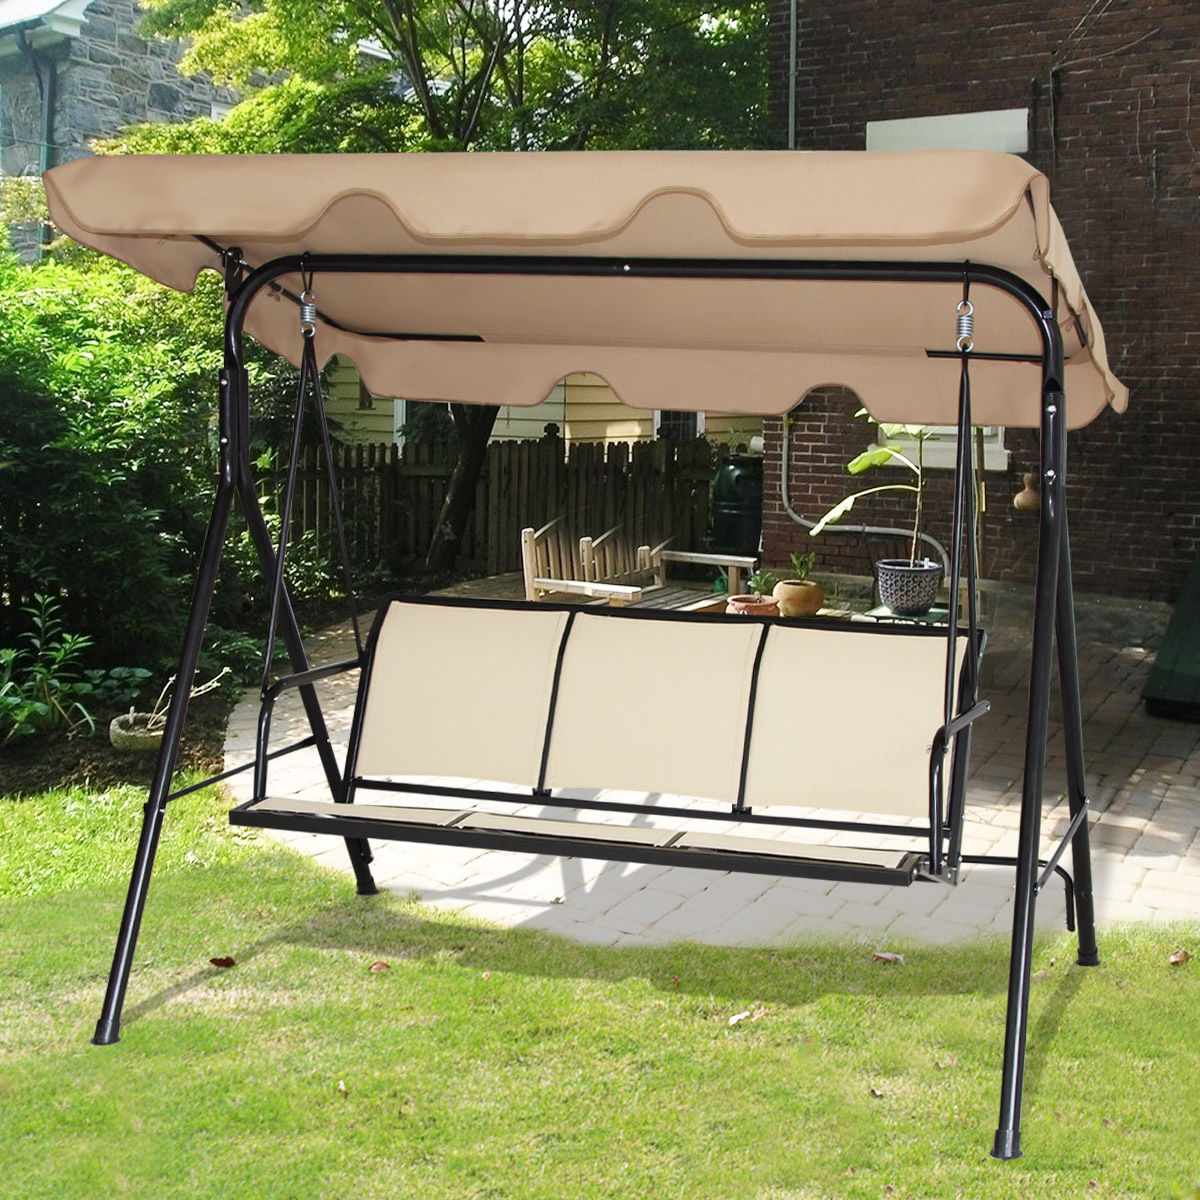 Gymax Brown Outdoor Swing Canopy Patio Swing Chair 3 Person Canopy Hammock